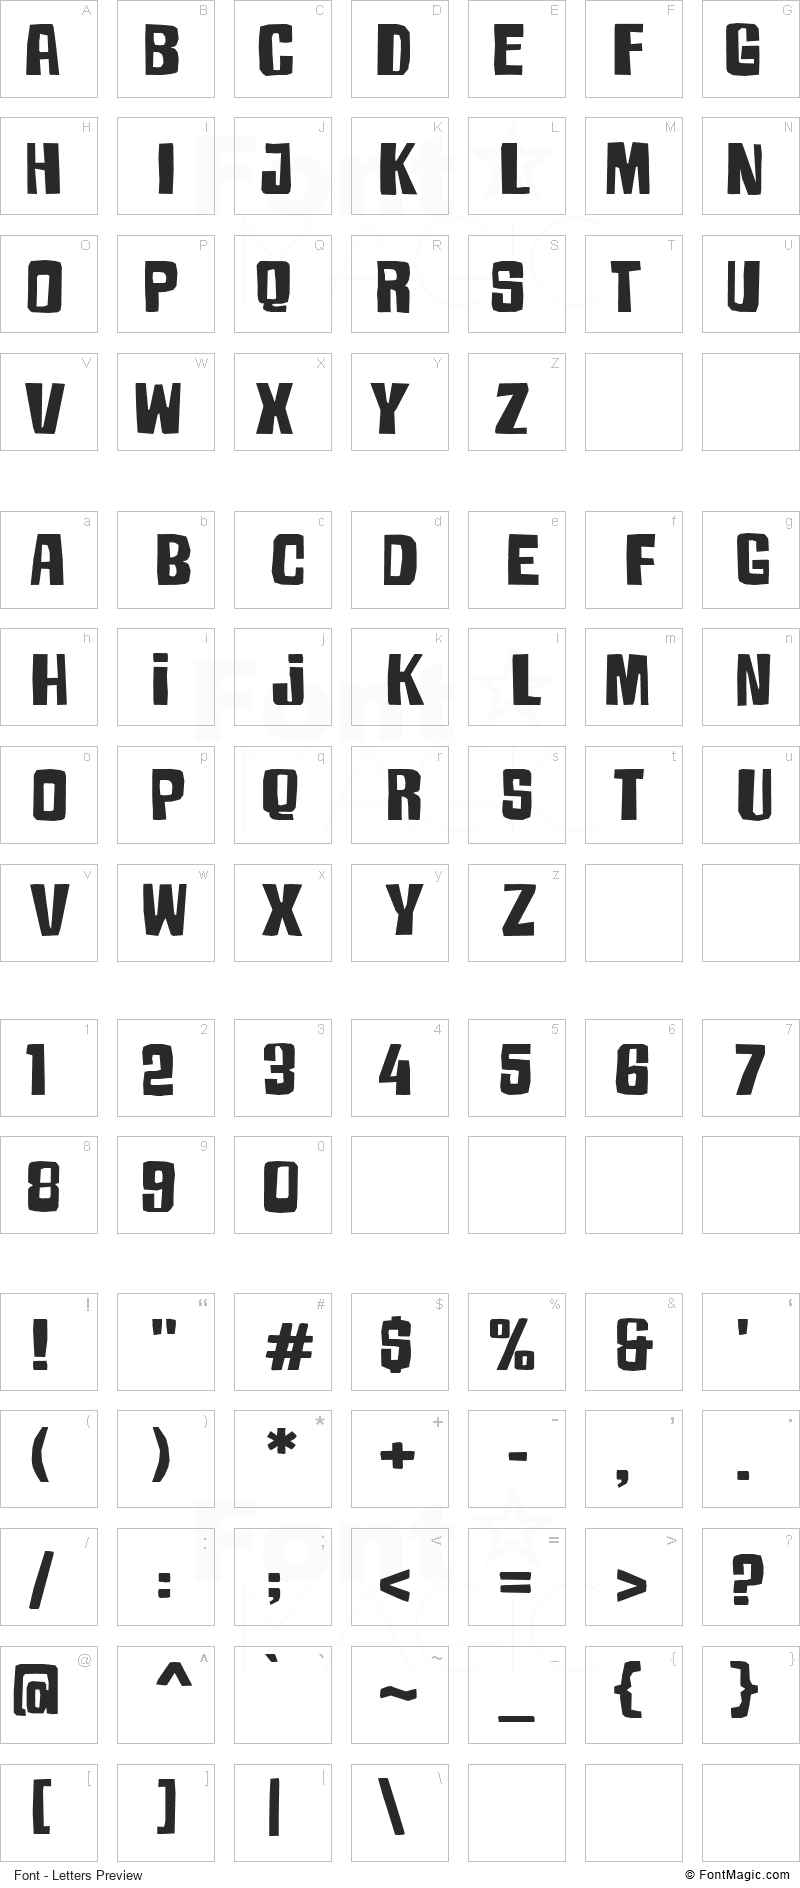 Armageda Font - All Latters Preview Chart